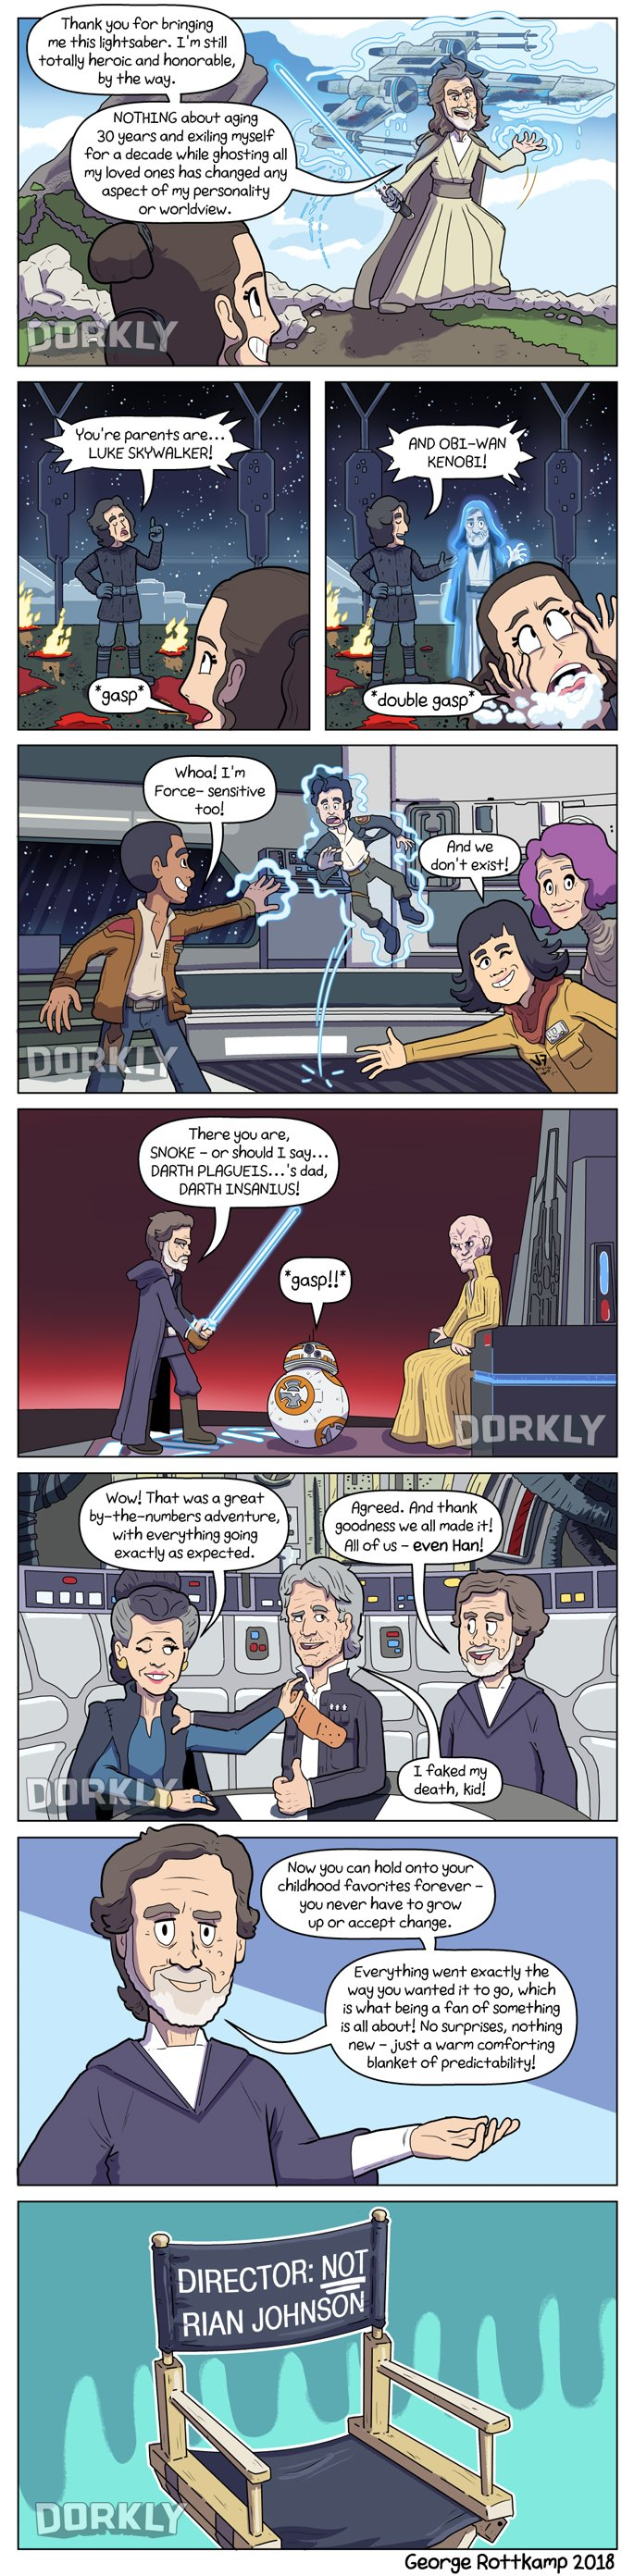 This STAR WARS: THE LAST JEDI Comic Strip Gives Haters What They Wanted1